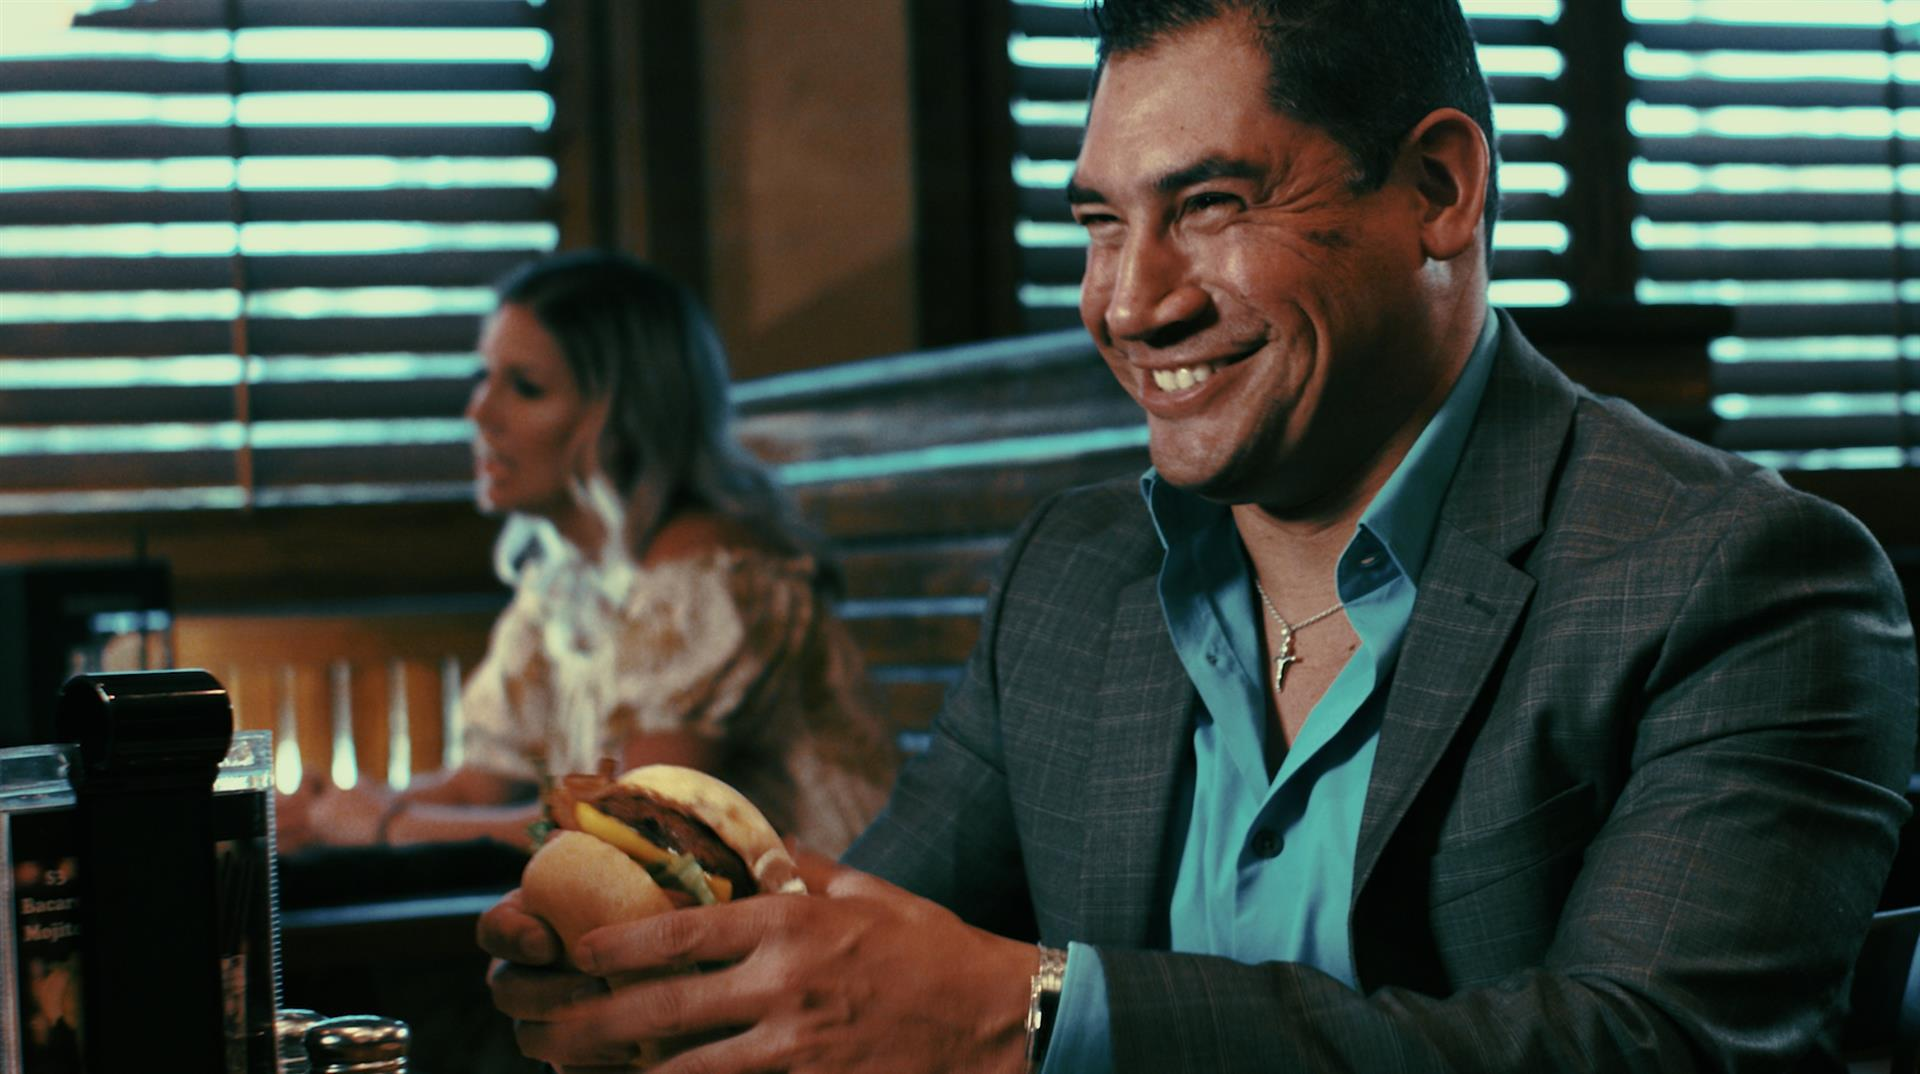 man with a handburger in his hand smiling